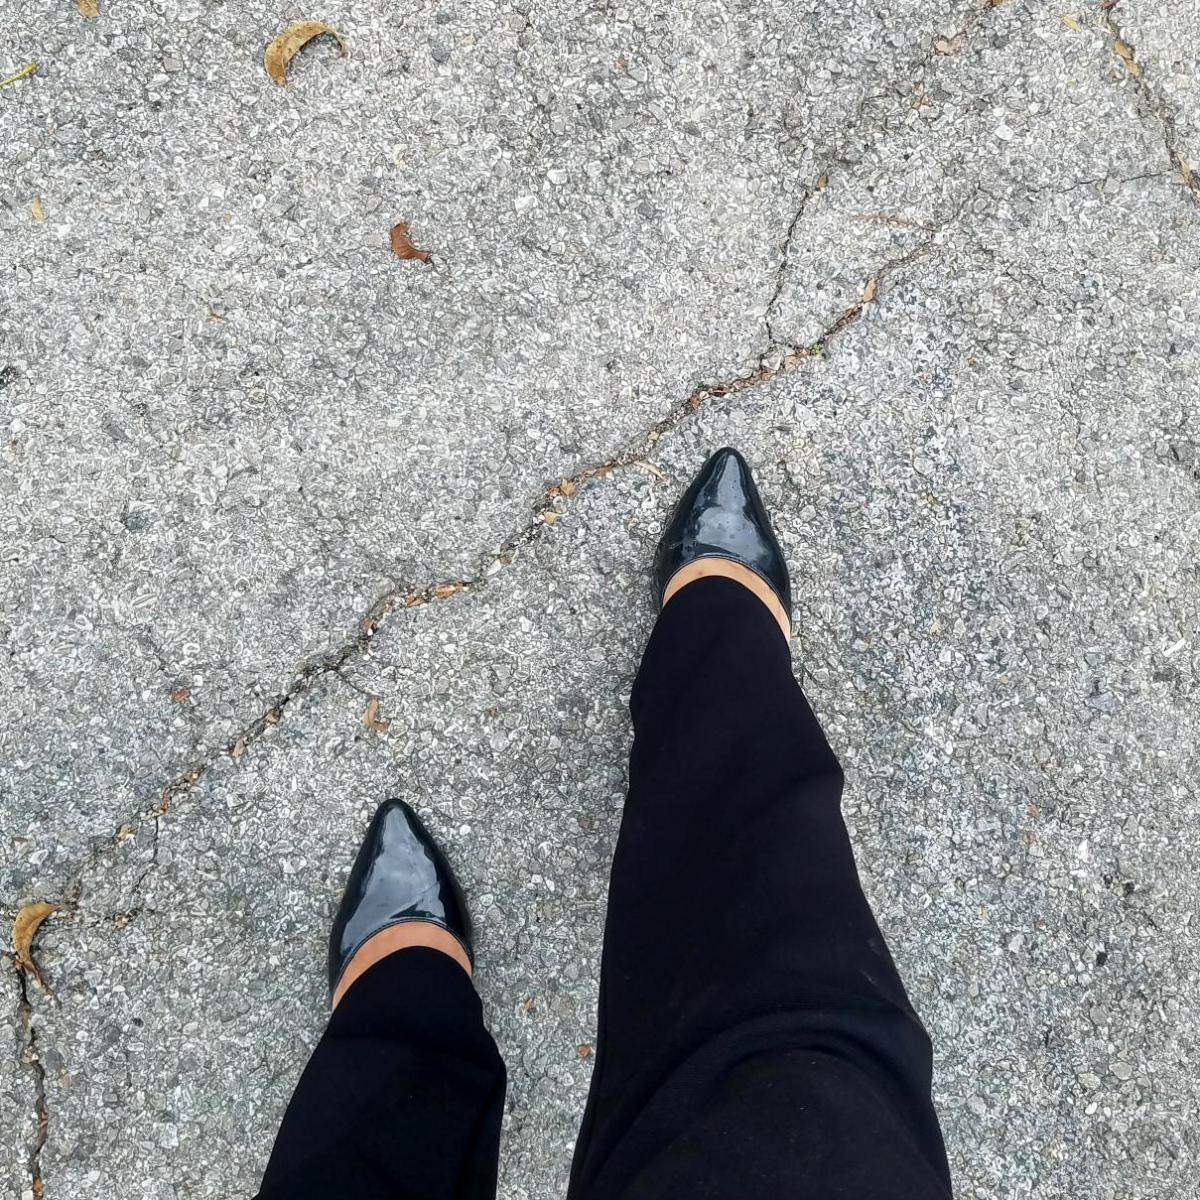 Person's feet walking on concrete wearing black pointy shoes.